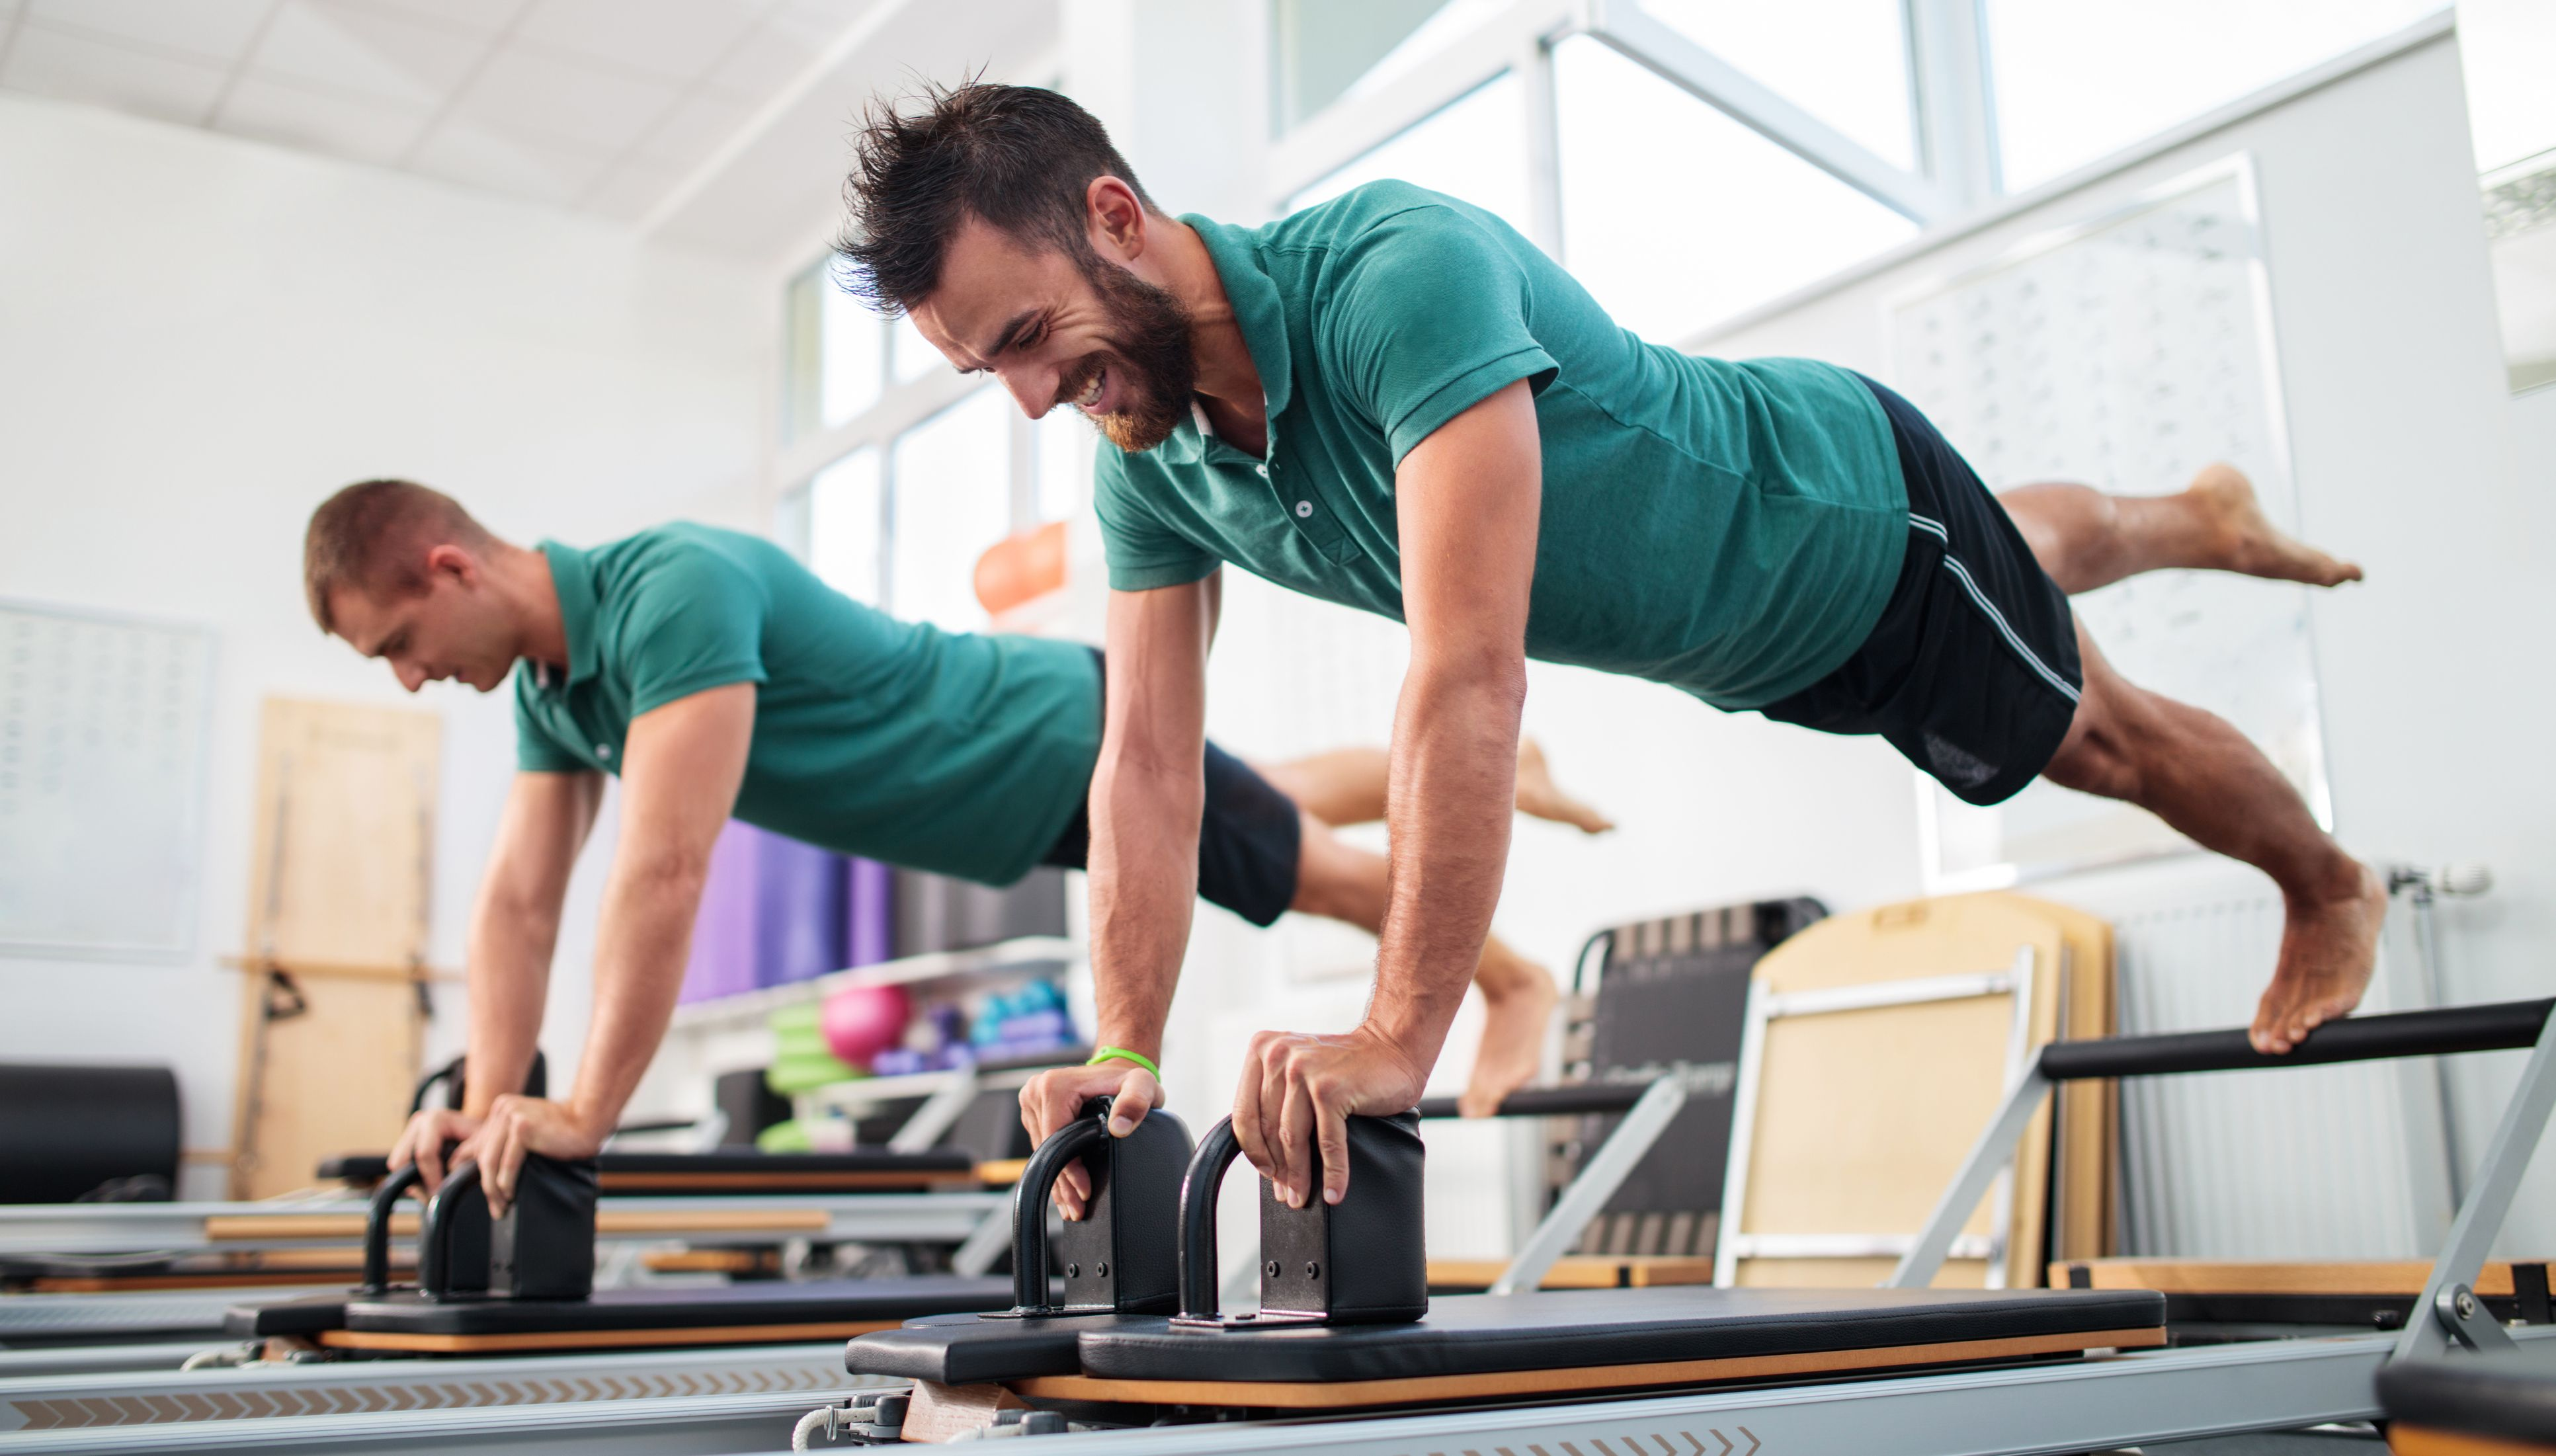 No, You're Not Too Manly for Pilates